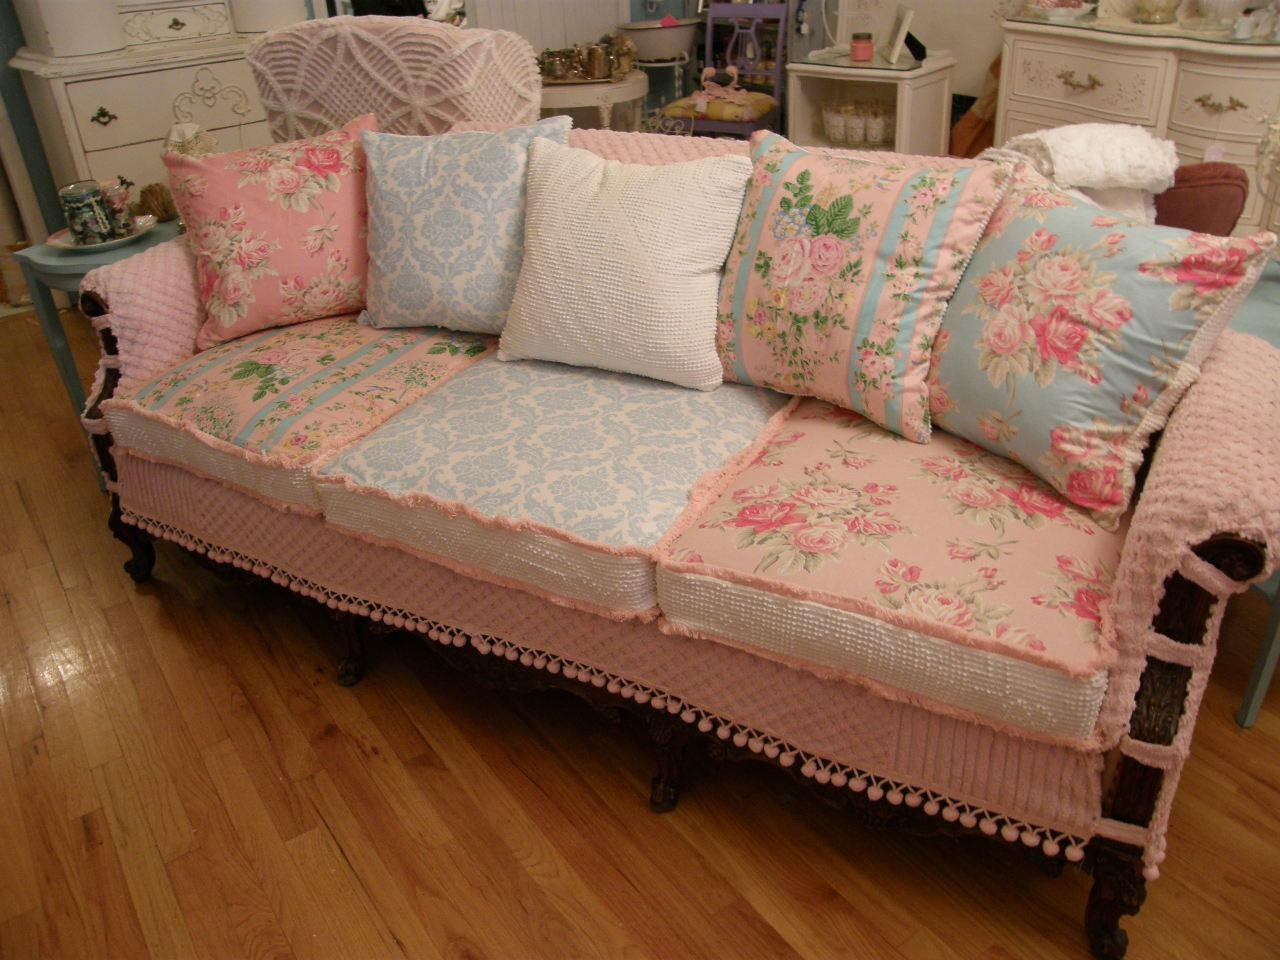 Slip Covers Chair And Quality Interiors | Sofa Slipcover | Chair Regarding Country Cottage Sofas And Chairs (View 20 of 20)